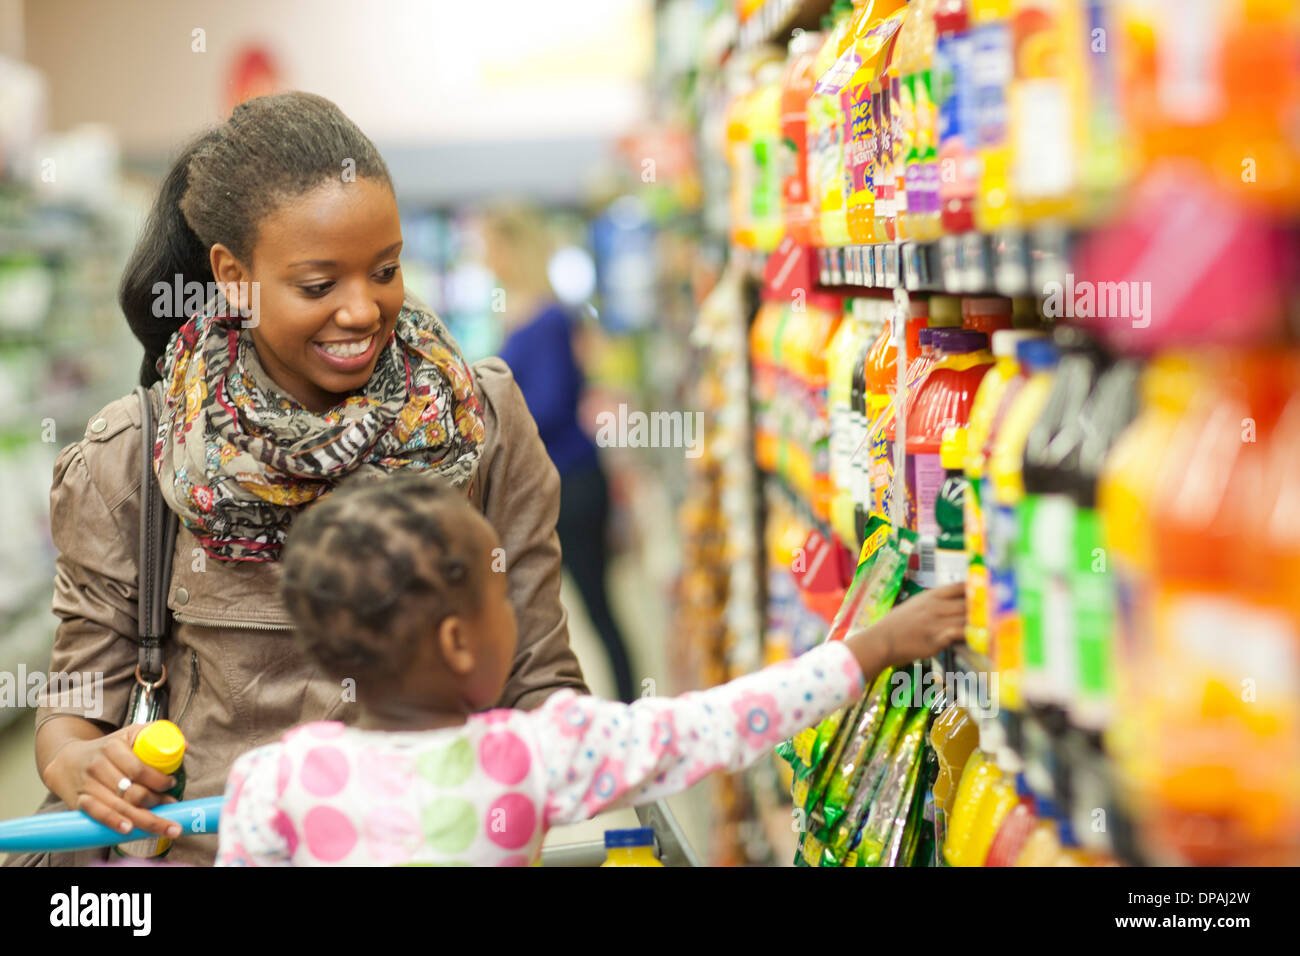 Female shopper and daughter in supermarket - Stock Image